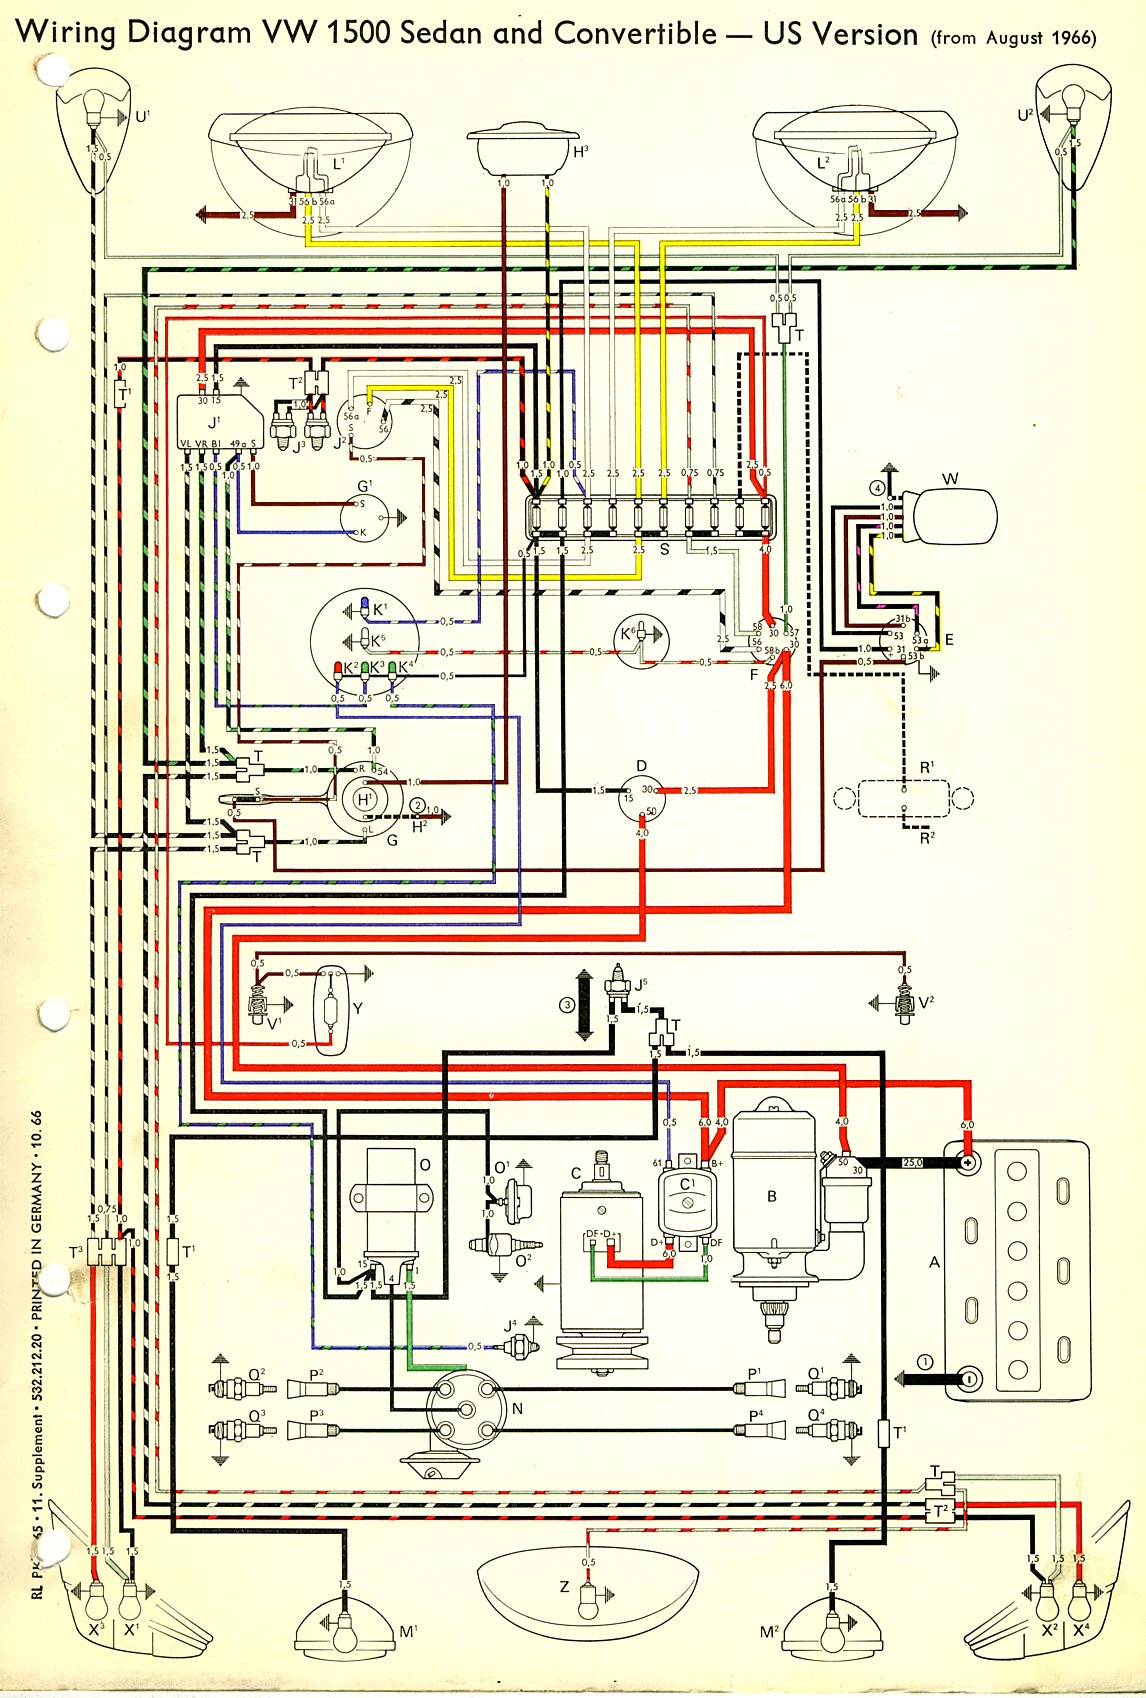 Wiring Diagram For 1967 Vw Beetle : Beetle wiring diagram usa thegoldenbug